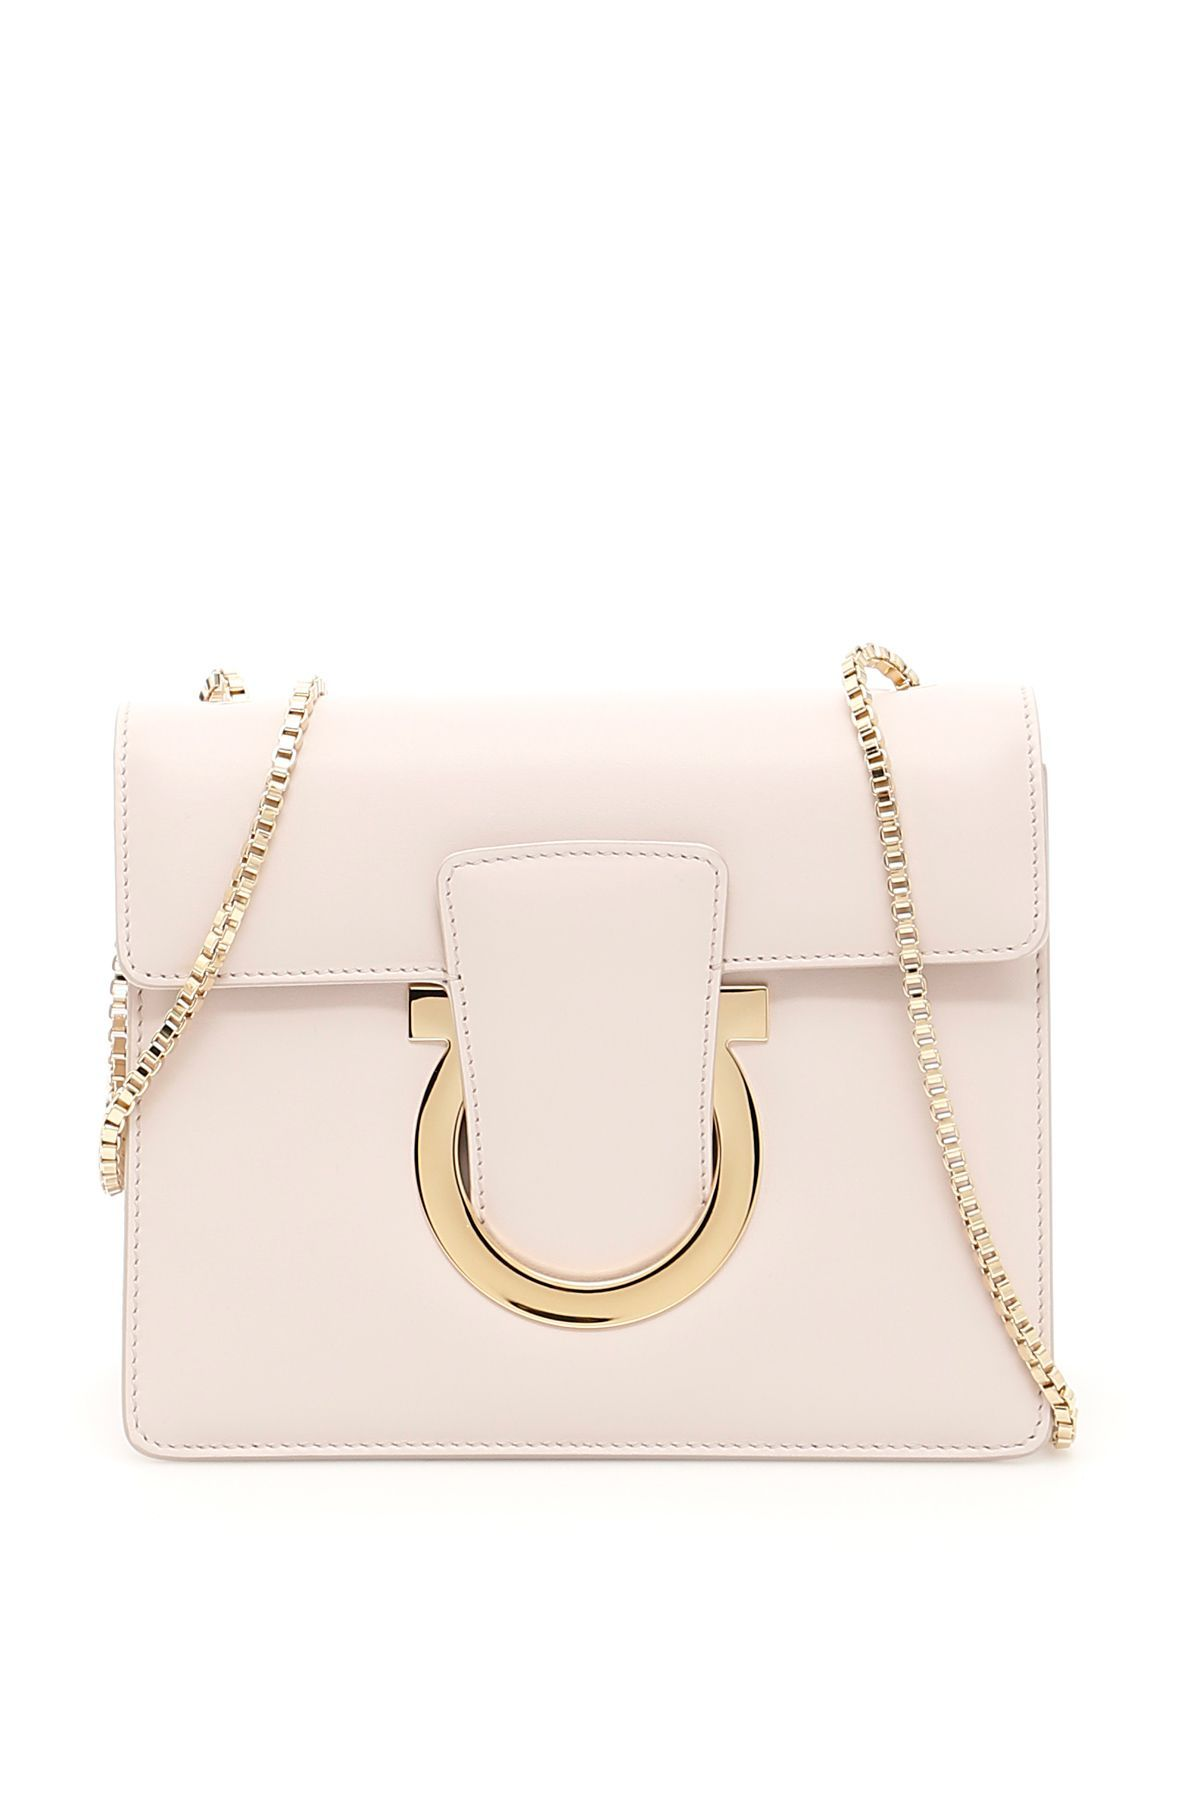 502bf5370cd SALVATORE FERRAGAMO THALIA CROSSBODY BAG.  salvatoreferragamo  bags  shoulder  bags  leather  crossbody  lining